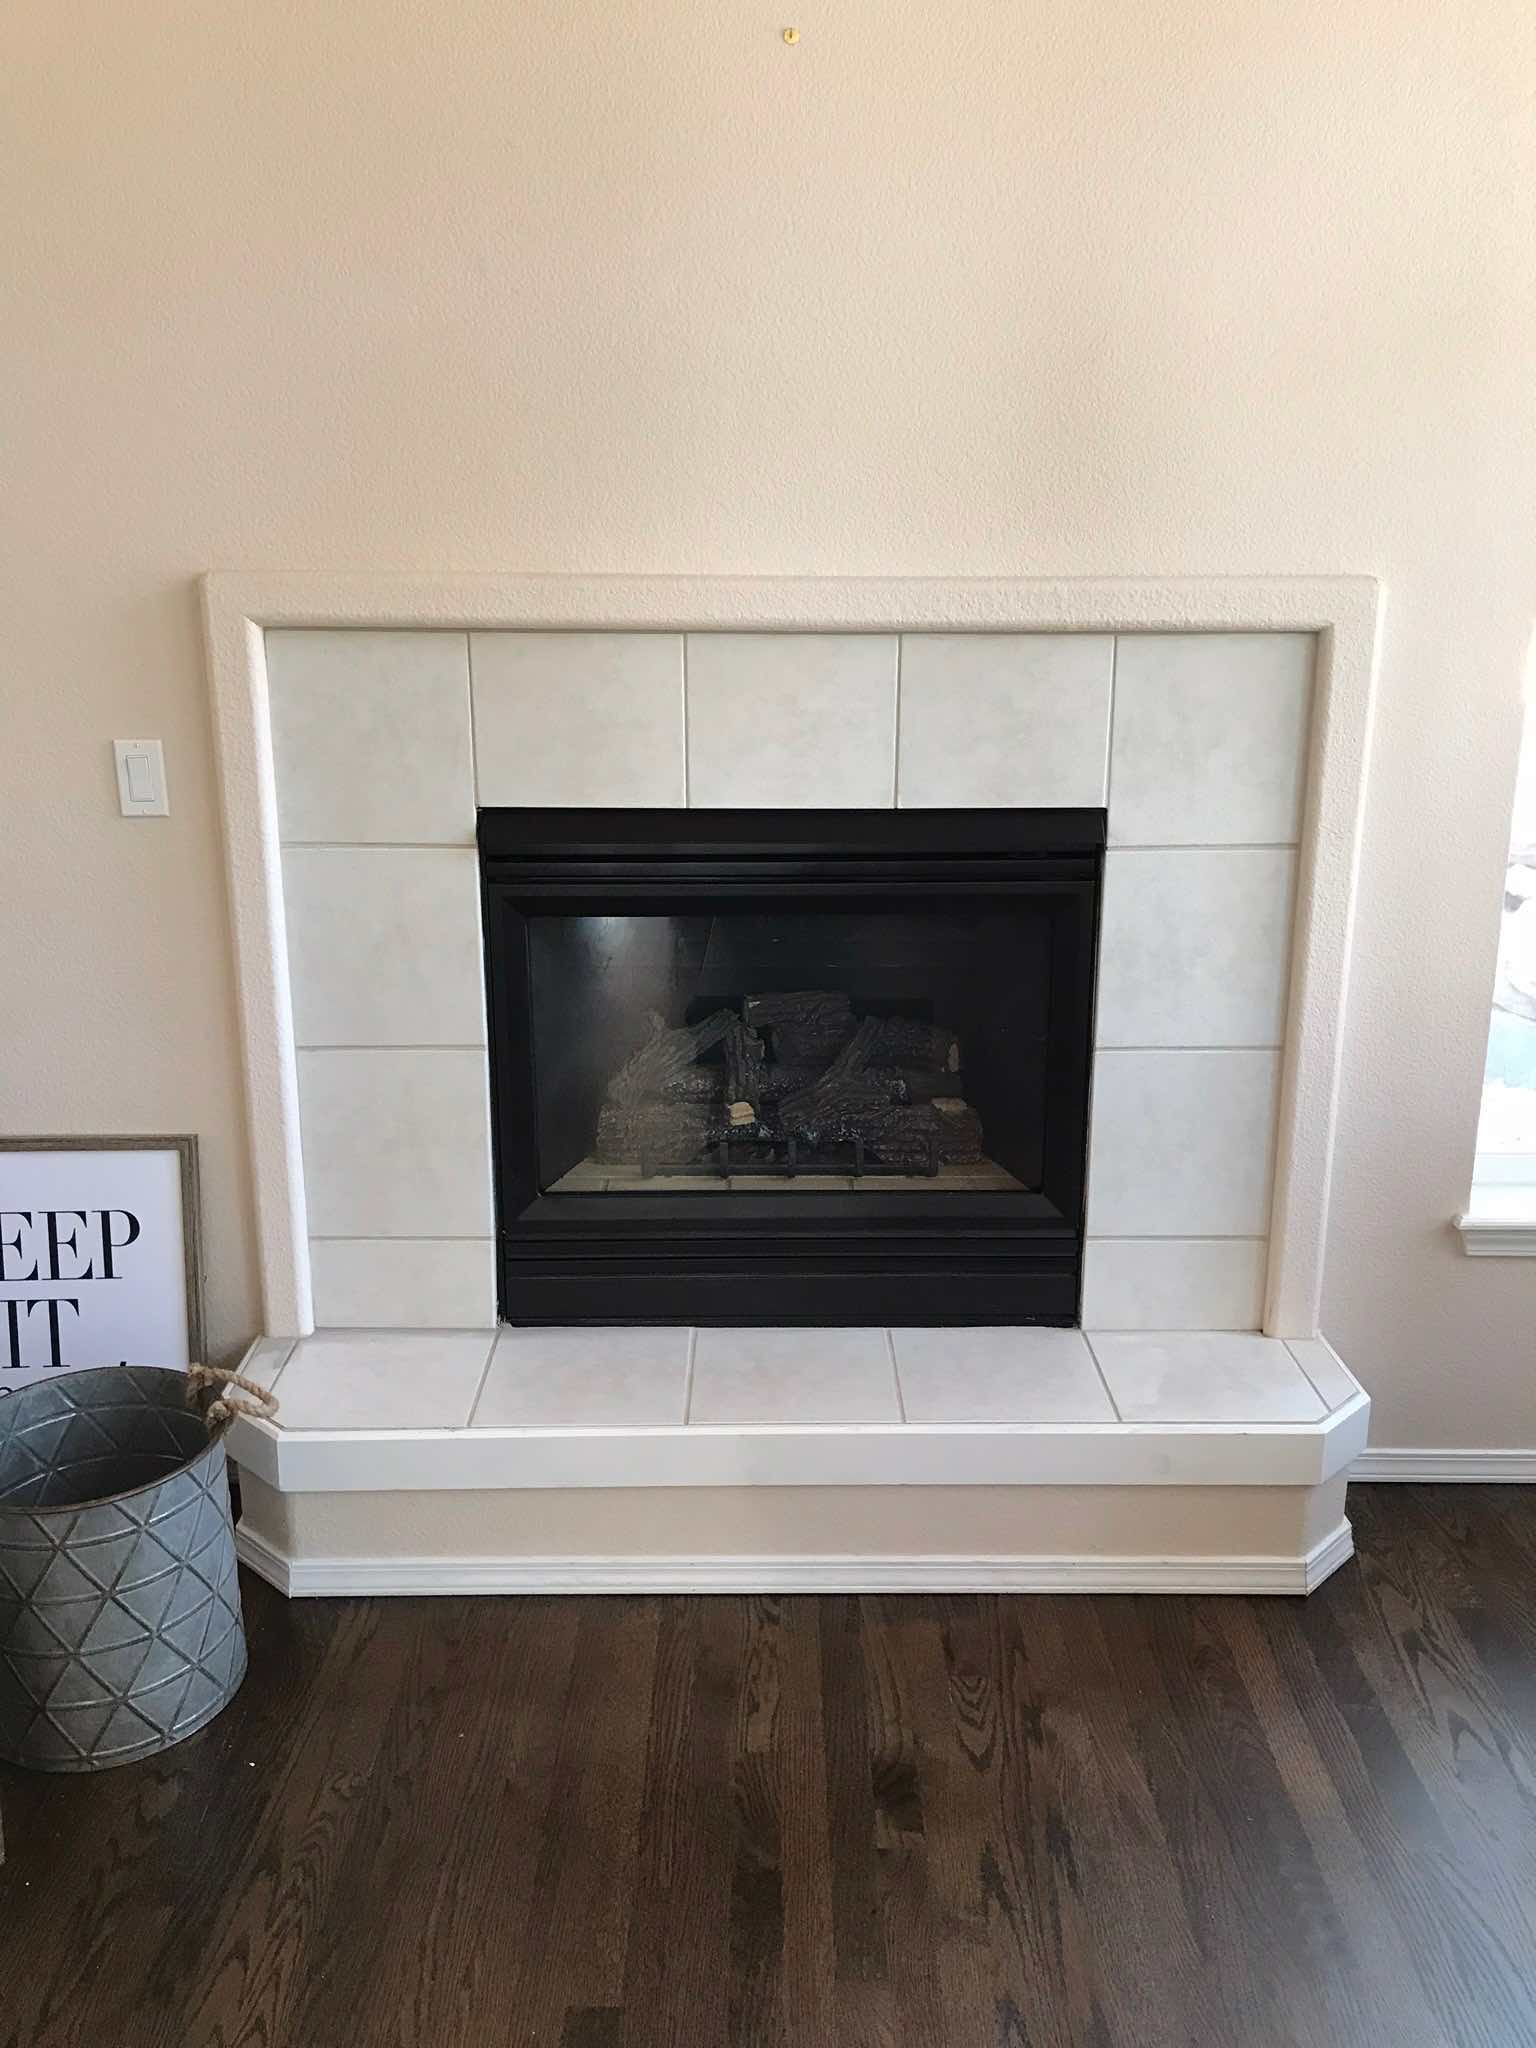 Painted over brass black fireplace